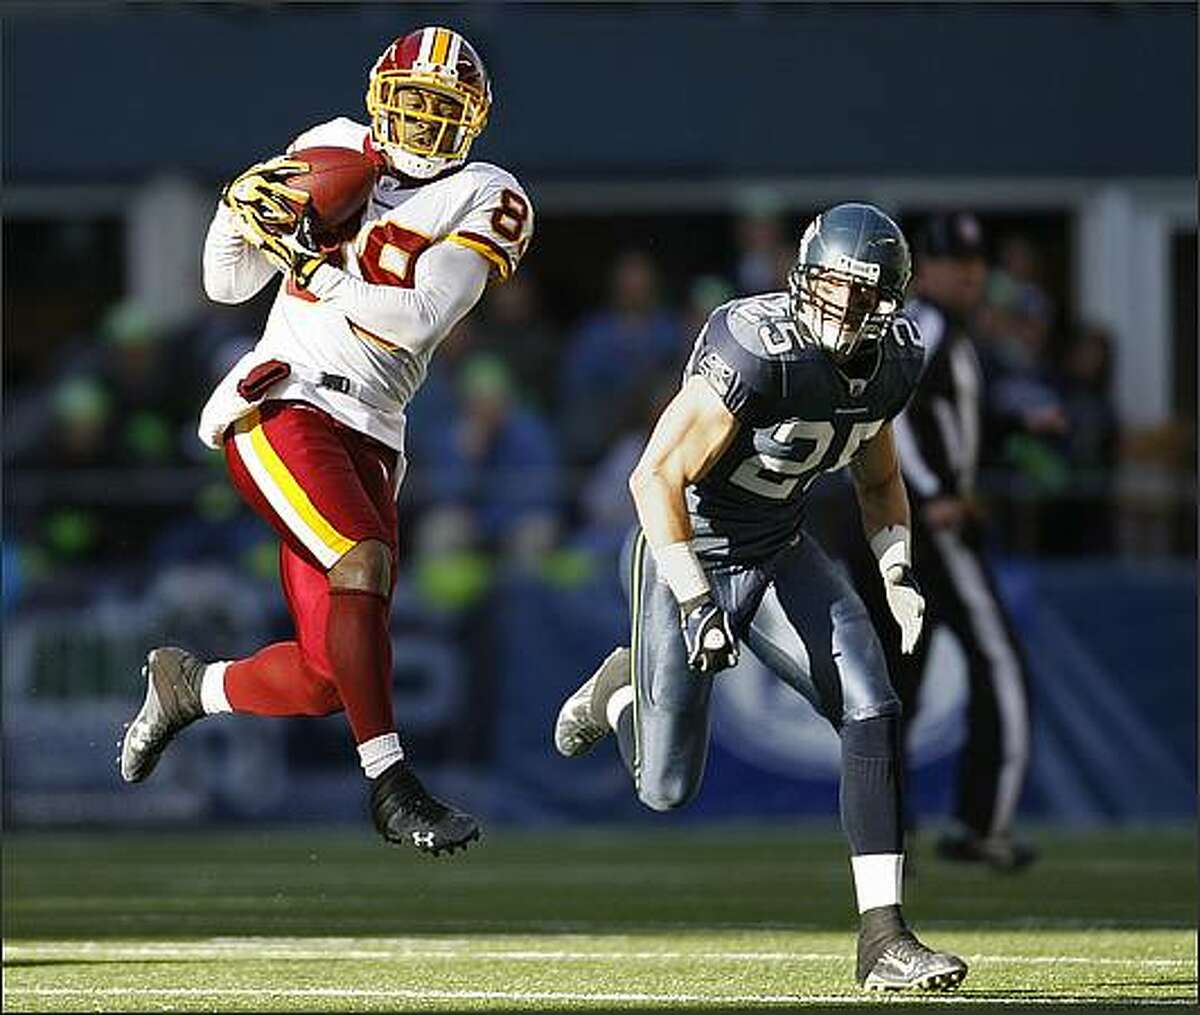 Washington Redskins wide receiver Santana Moss pulls in a 20-yard catch before being tackled by Seattle Seahawks safety Brian Russell in the 1st quarter.